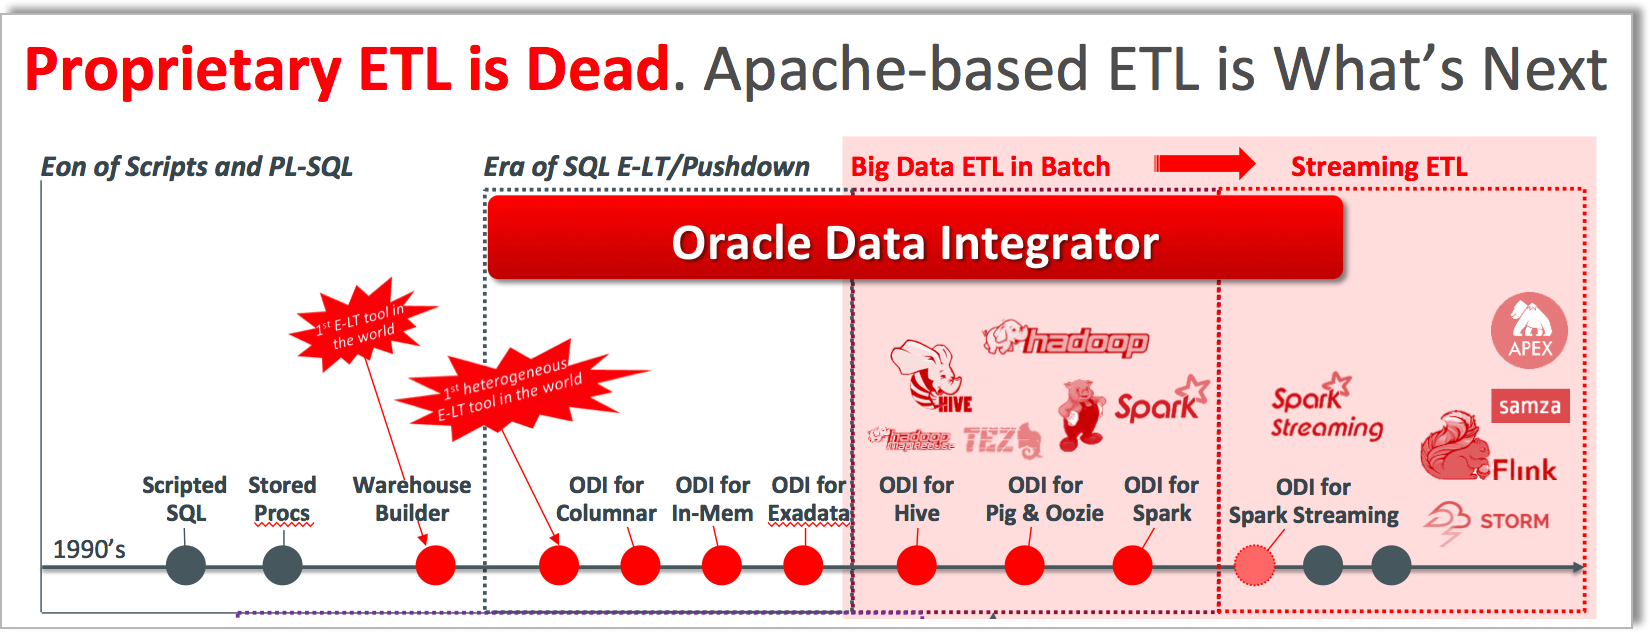 Rittman mead consulting oracle faq with many successful oracle data integration and big data engagements completed throughout the world the experts at rittman mead continue to lead in the baditri Gallery